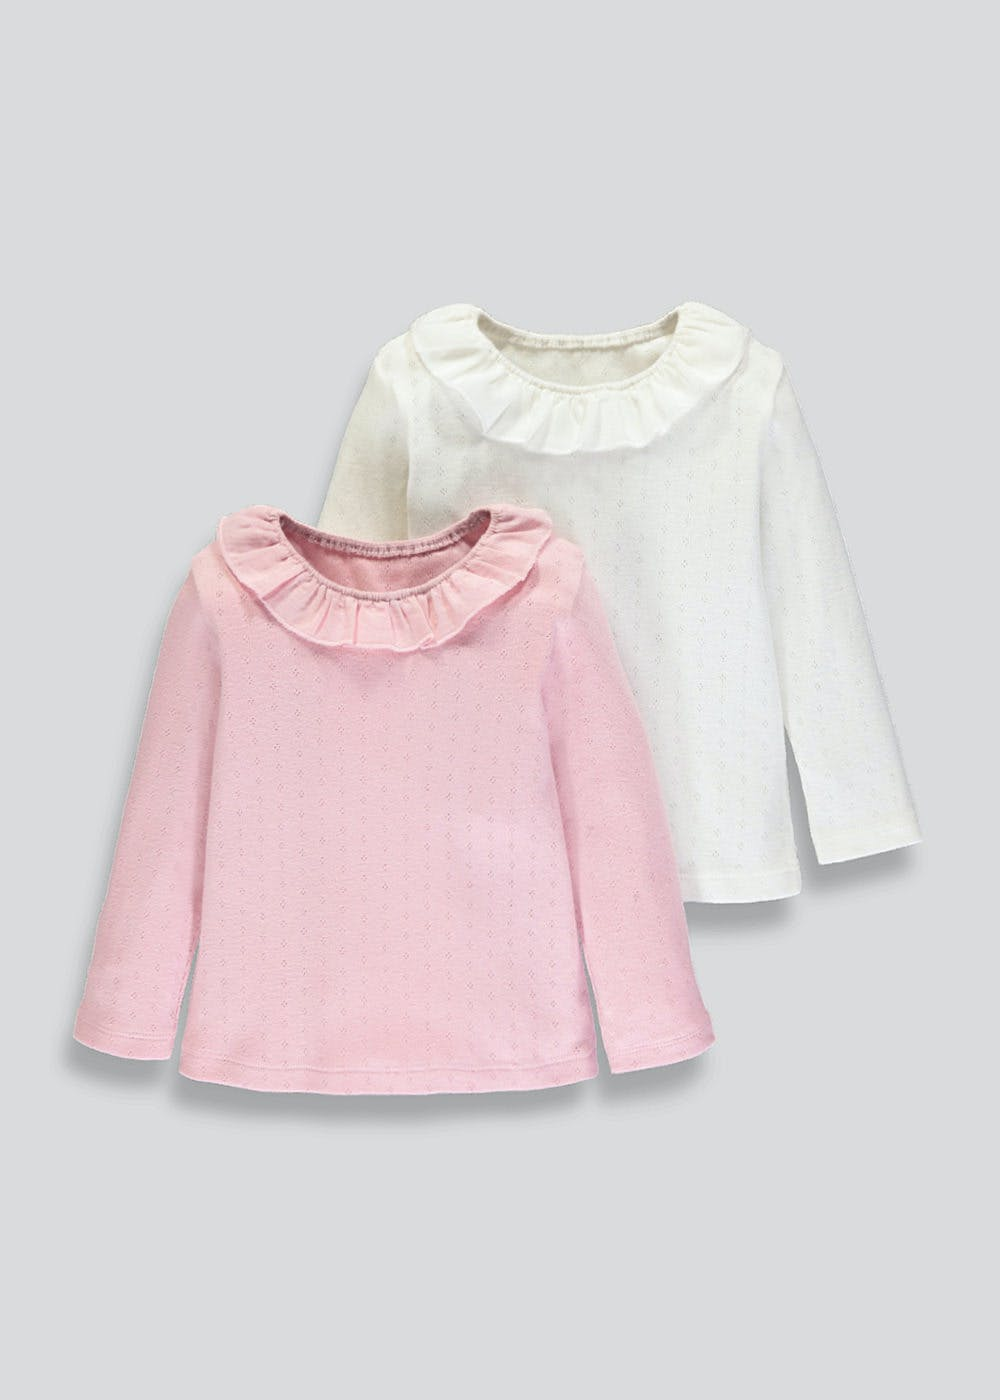 c8b202e777e59 Girls 2 Pack Woven Frill Collar Tops (3mths-6yrs) – Multi – Matalan